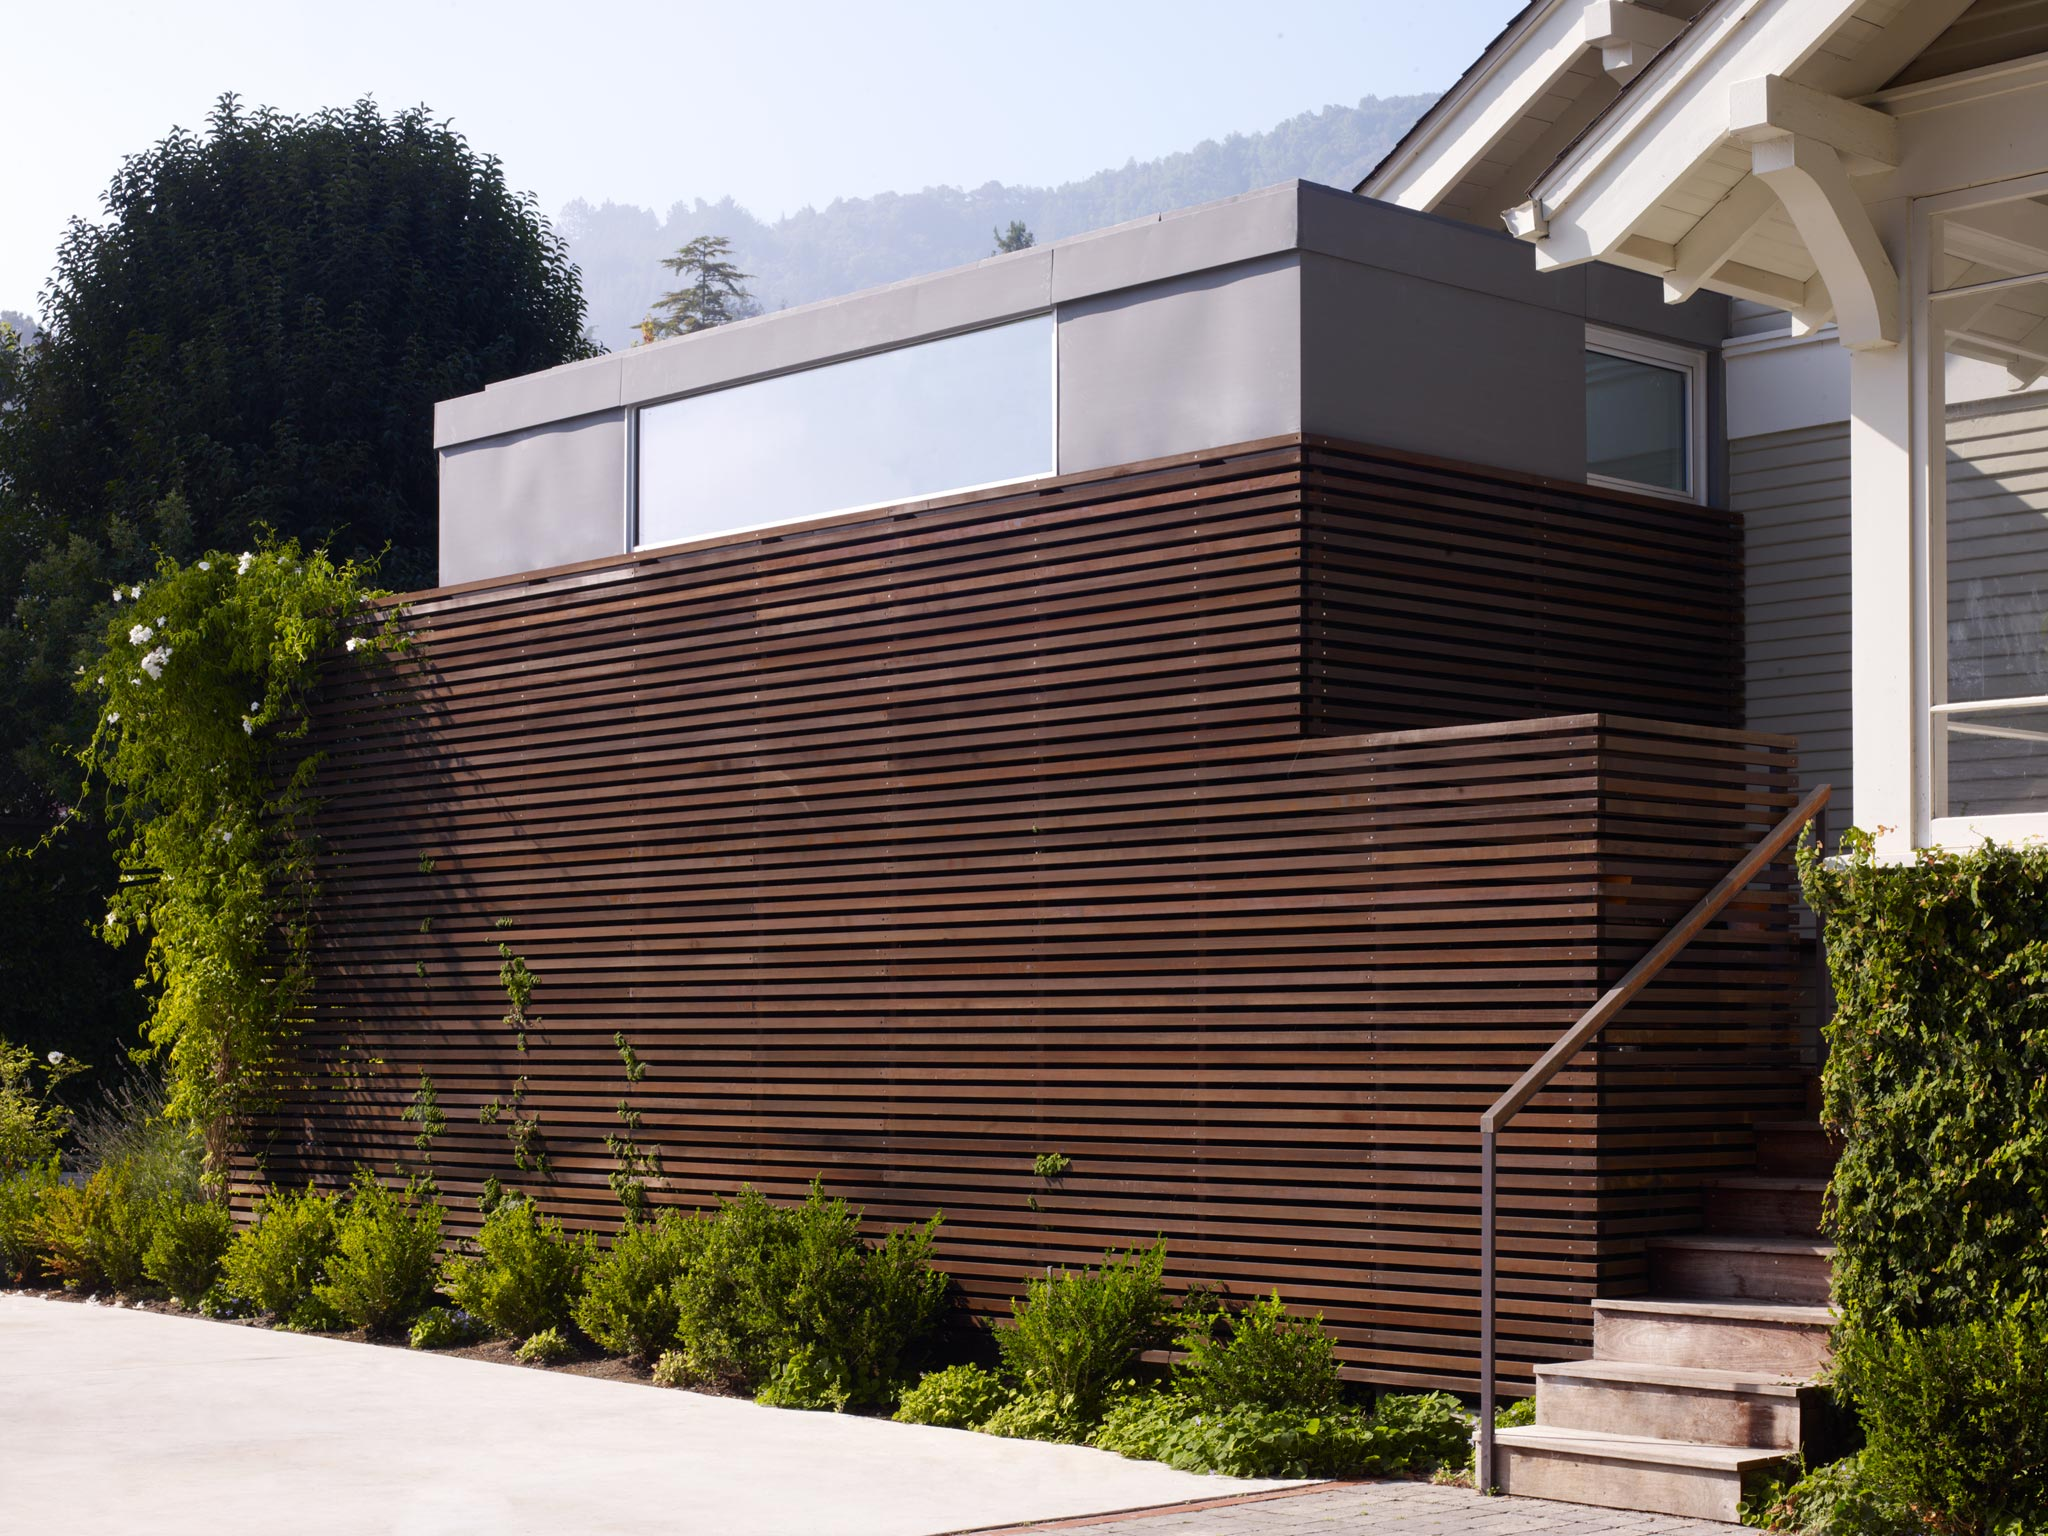 Larkspur modern design minimalist addition street view